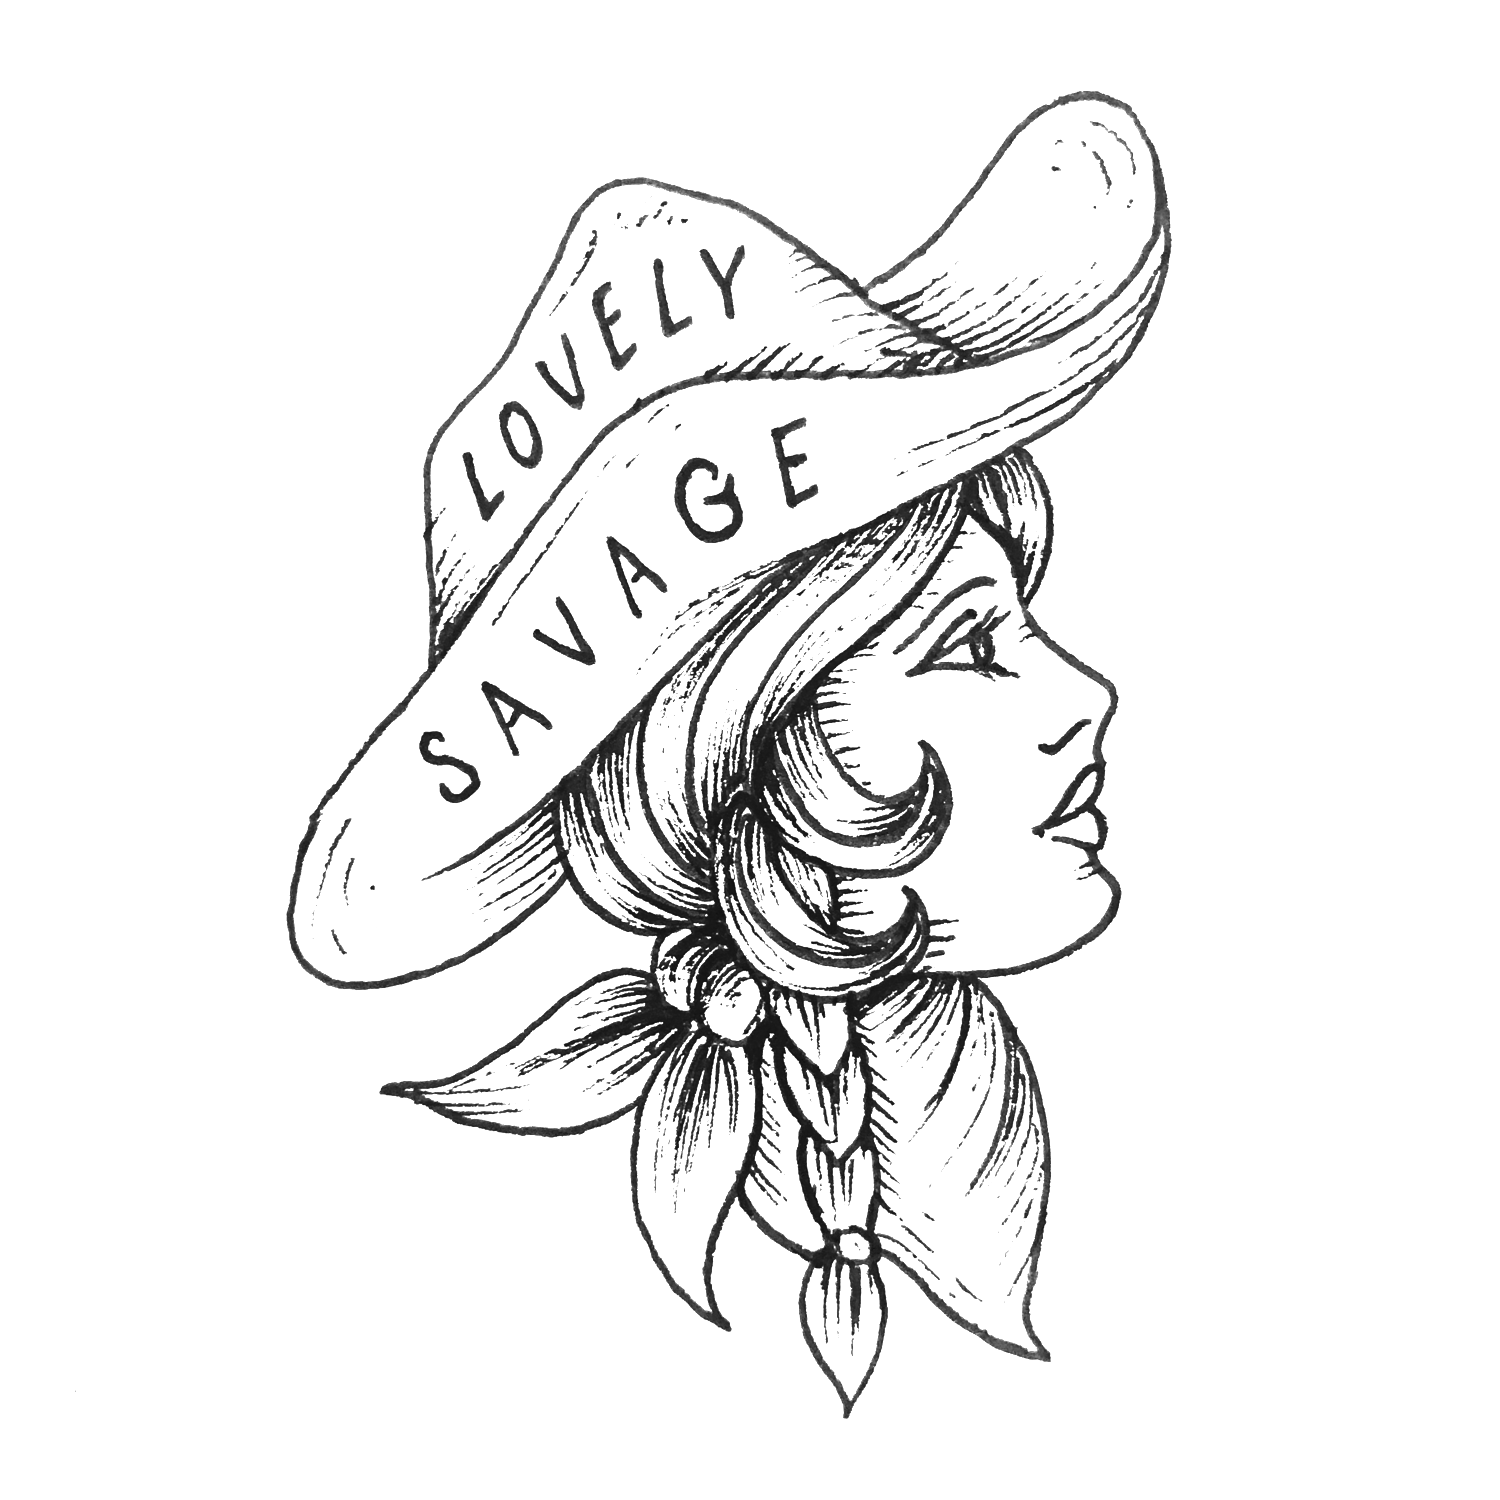 Lovely Savage :: Illustration & branding